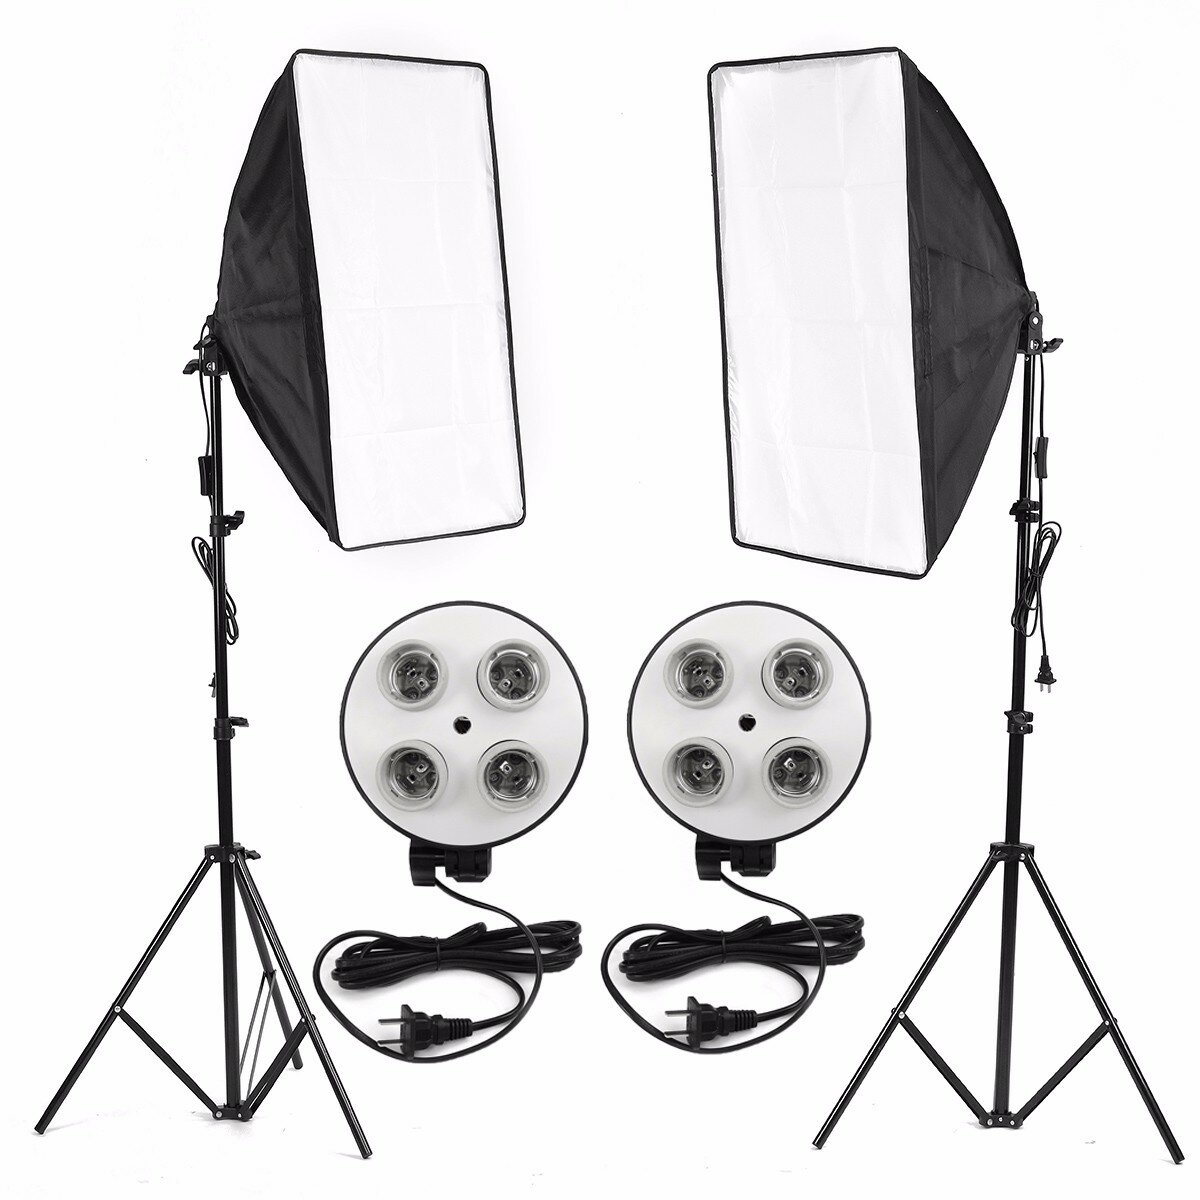 Photo Video Studio Lighting Kit 4 Socket E27 Lamp Holder Softbox Light Stands